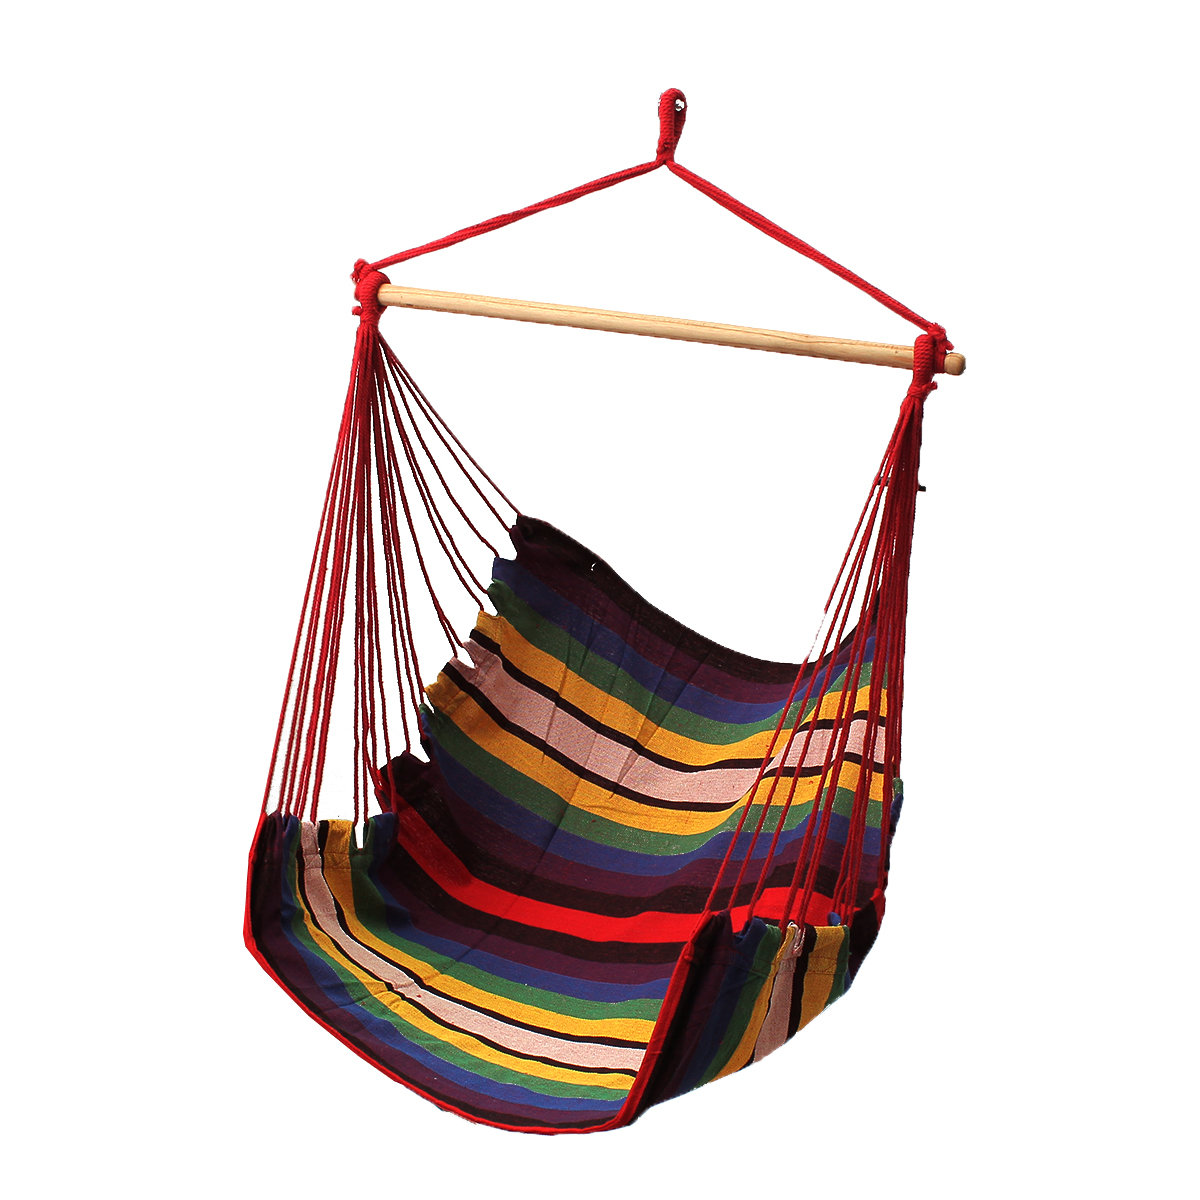 Hamac En Solde Garden Patio Suspension Épaisses Hamac Chaise Indoor Outdoor Coton Swing Coussin Seat